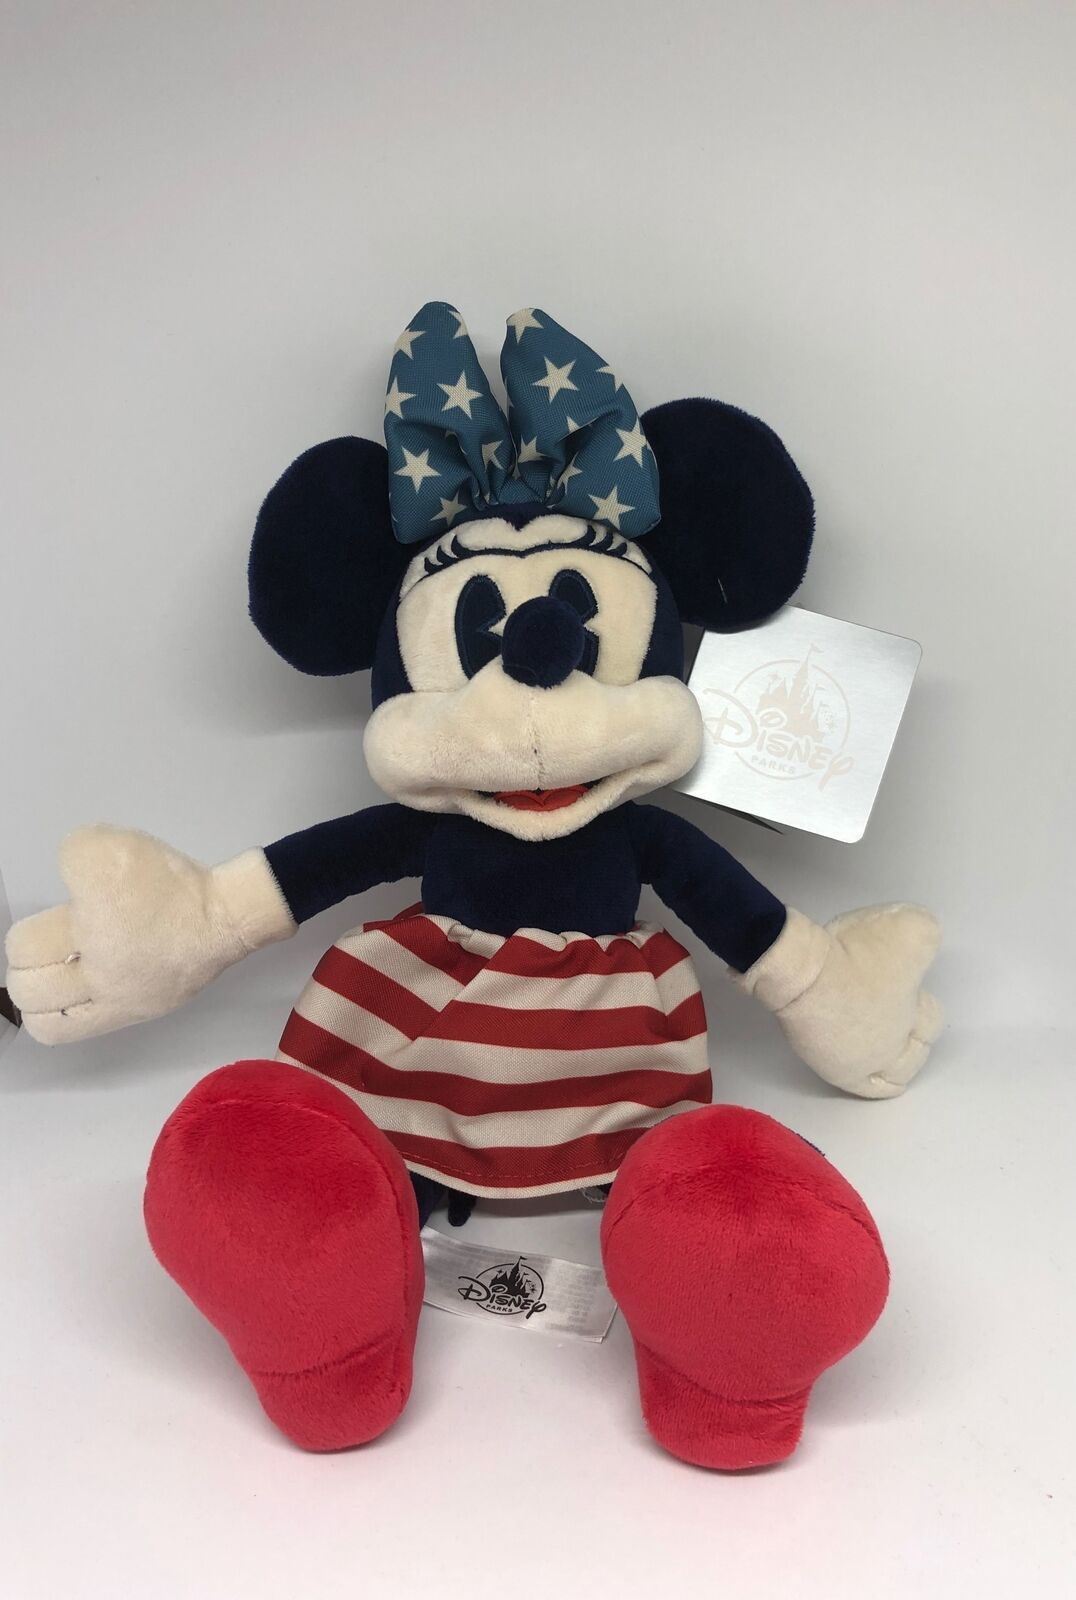 Disney Parks 11inc Mamer Minnie Mouse Americana Plush New with Tags